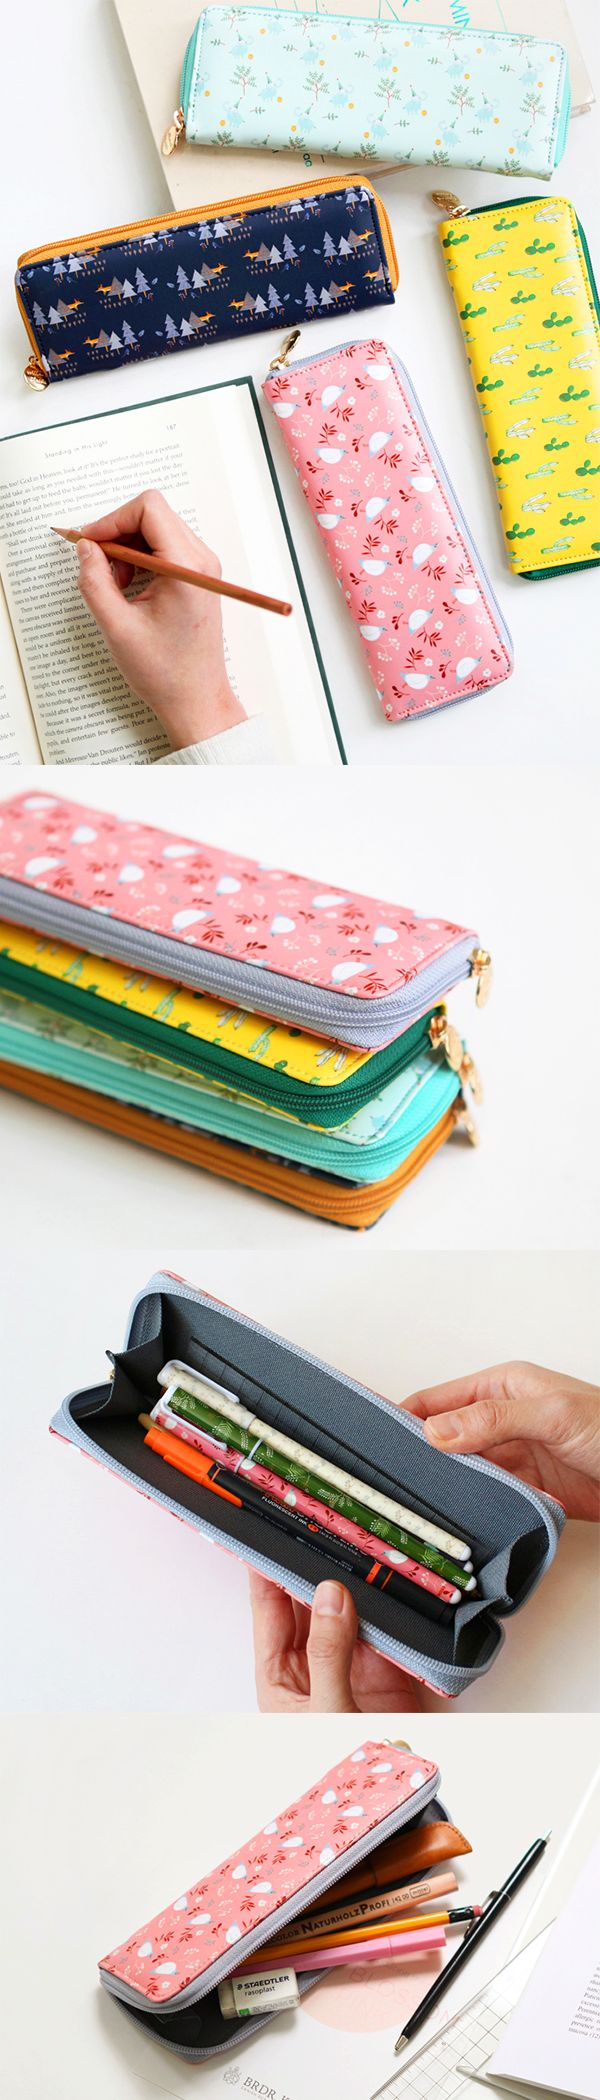 If you're anything like me, this Willows Classic Slim Pen Case is an absolute necessity! I need to carry my pens, pencils, & USB drive with me wherever I go, but I don't want them rolling around the bottom of my bag. This lovely pen case holds them all, but is ultra slim & light so I don't feel the added weight at all! The inner flaps allow me to open it super wide so I can see everything at a glance & I love the gold zipper tag detail. It's so chic & cute - I'm tempted to collect all 4…